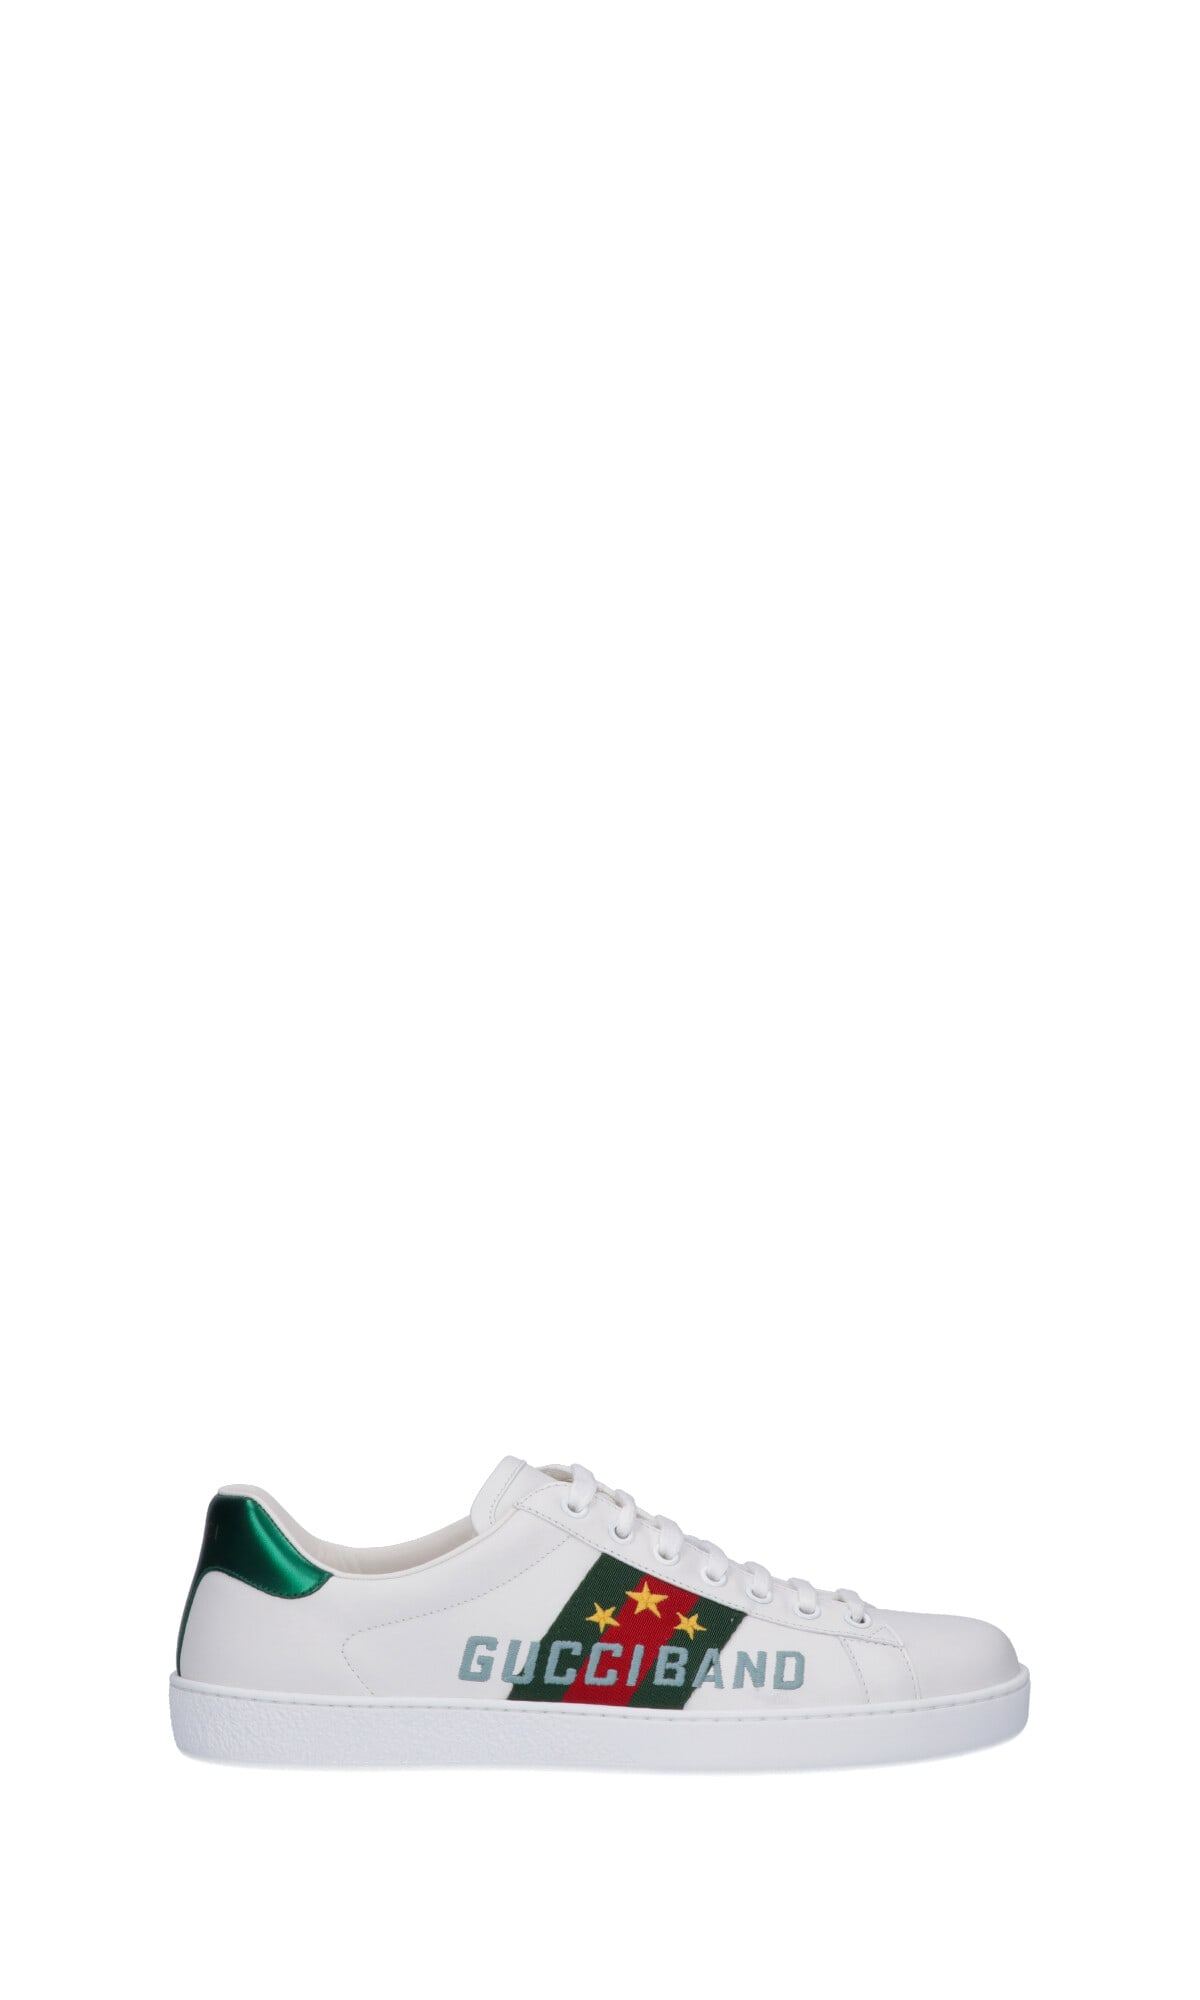 Ace Gucci Band Sneaker